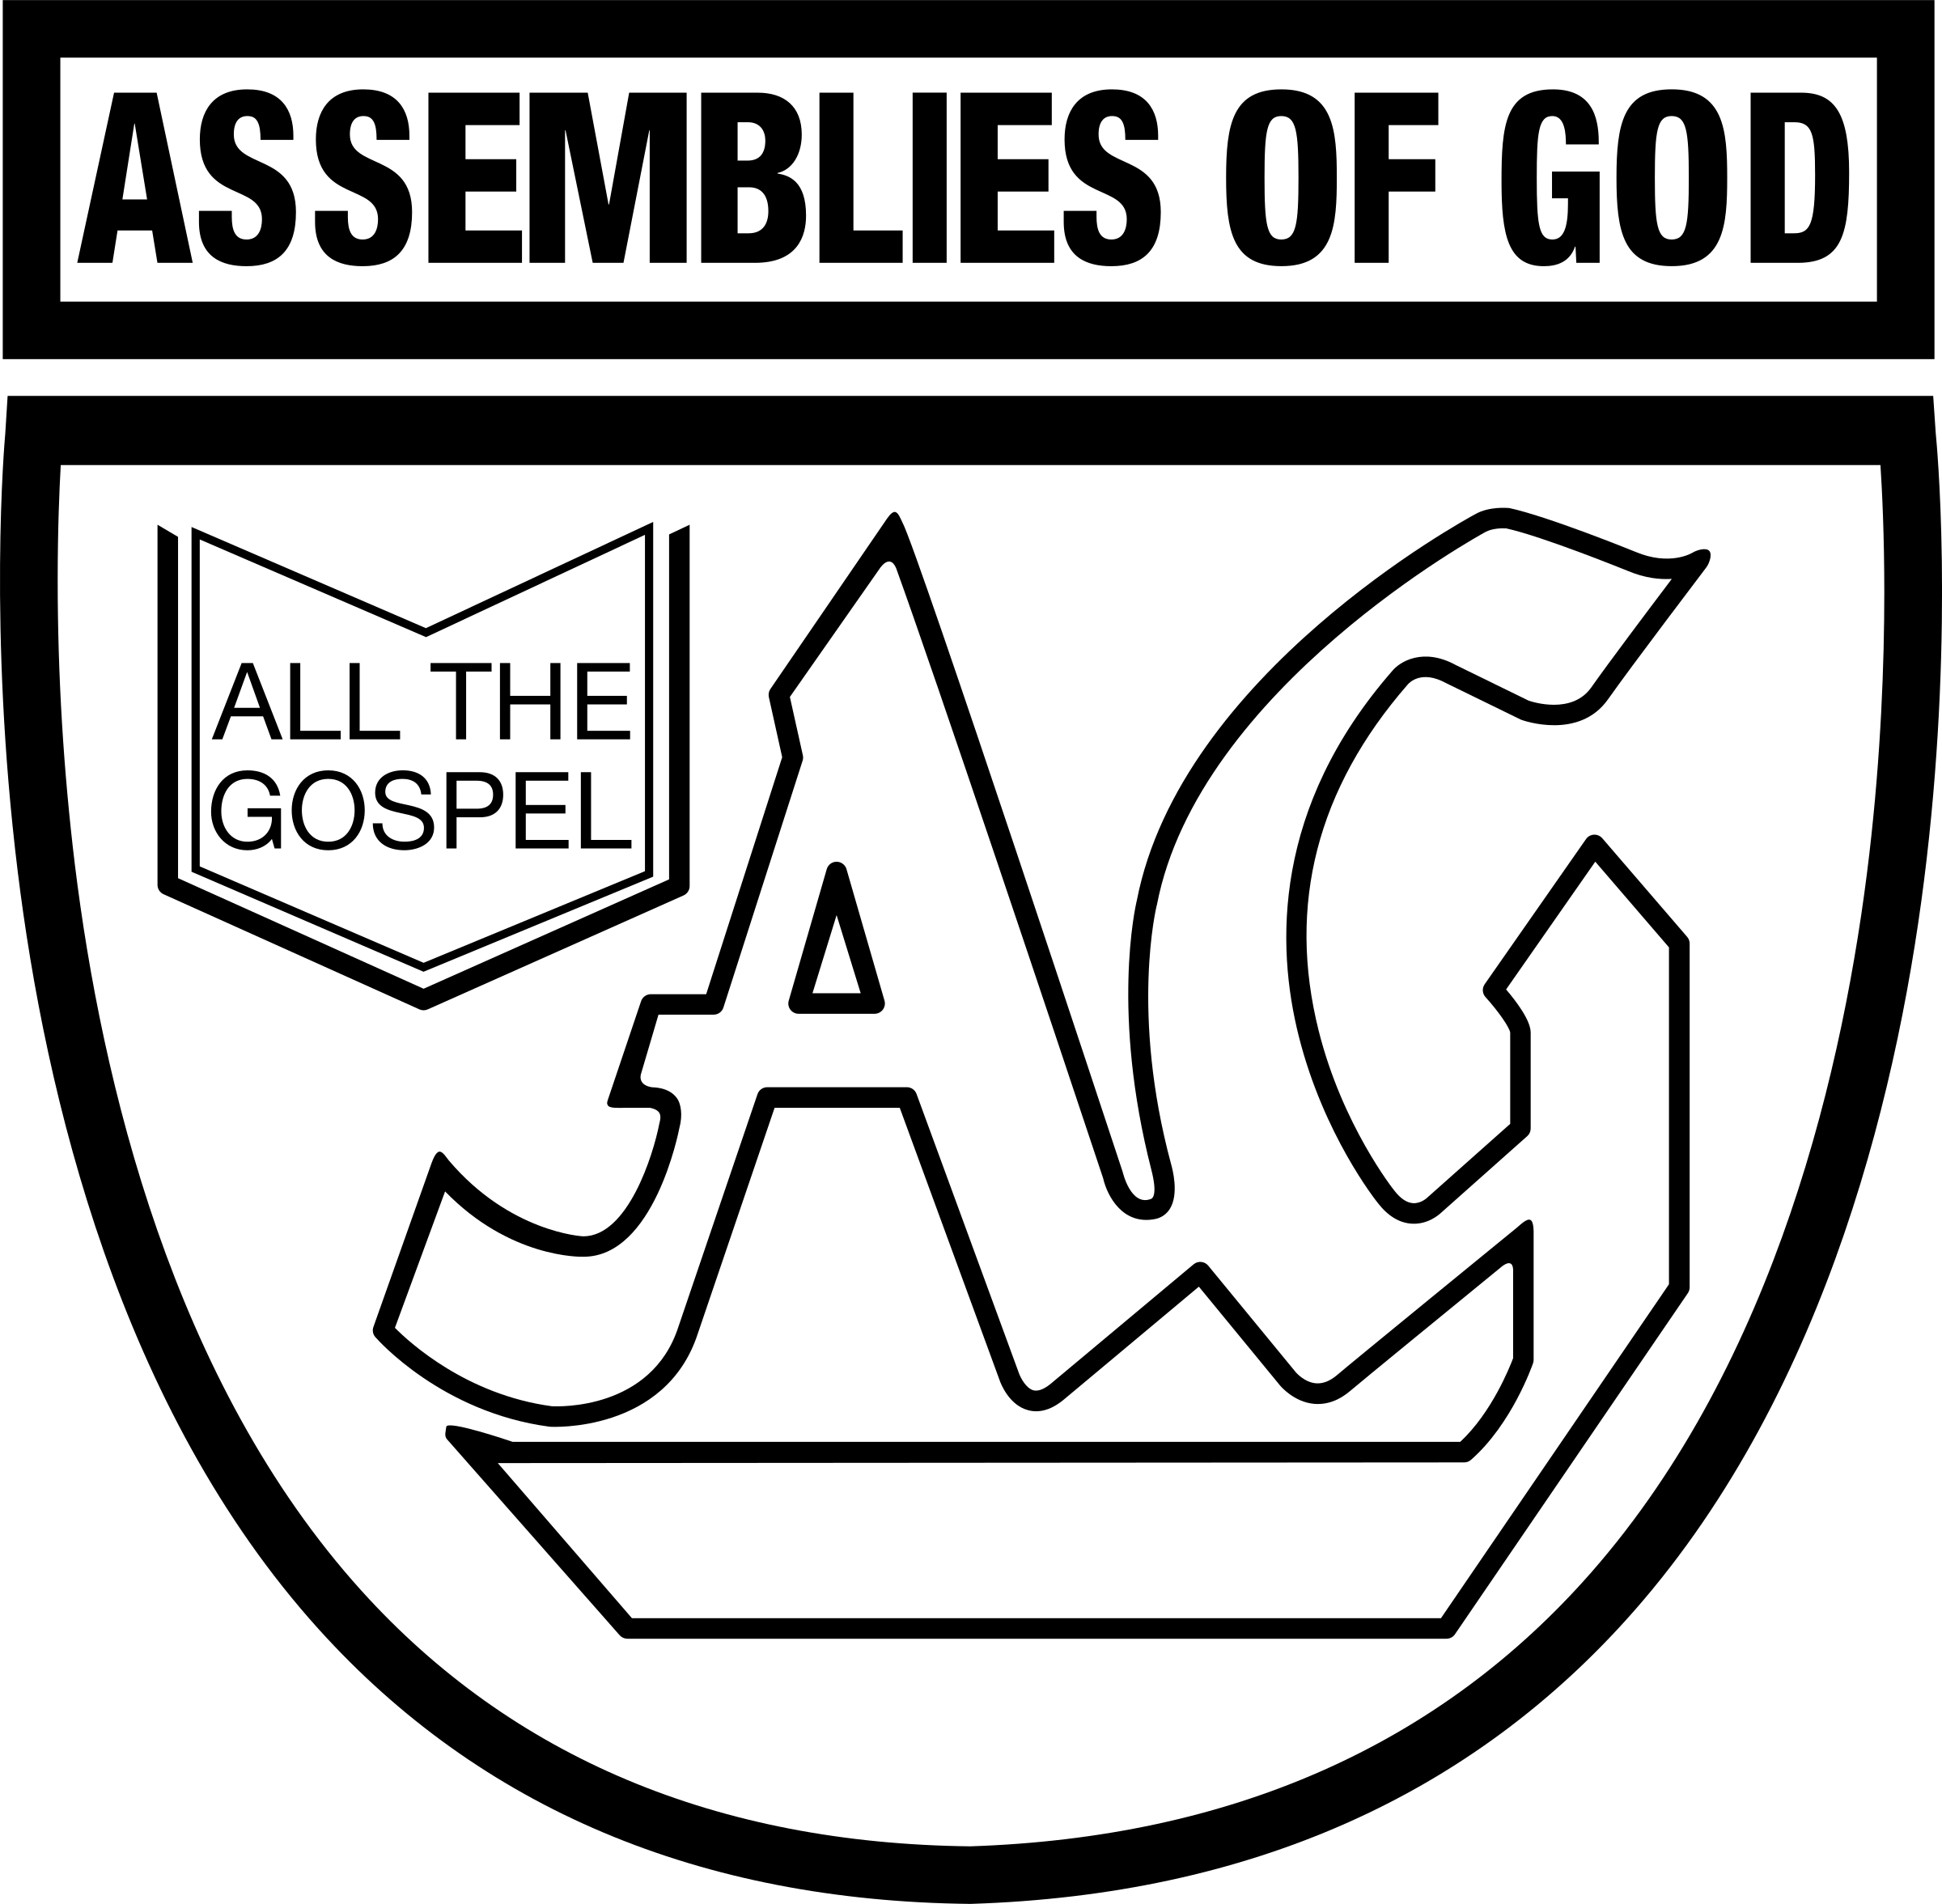 Assemblies of god logo png. Transparent svg vector freebie